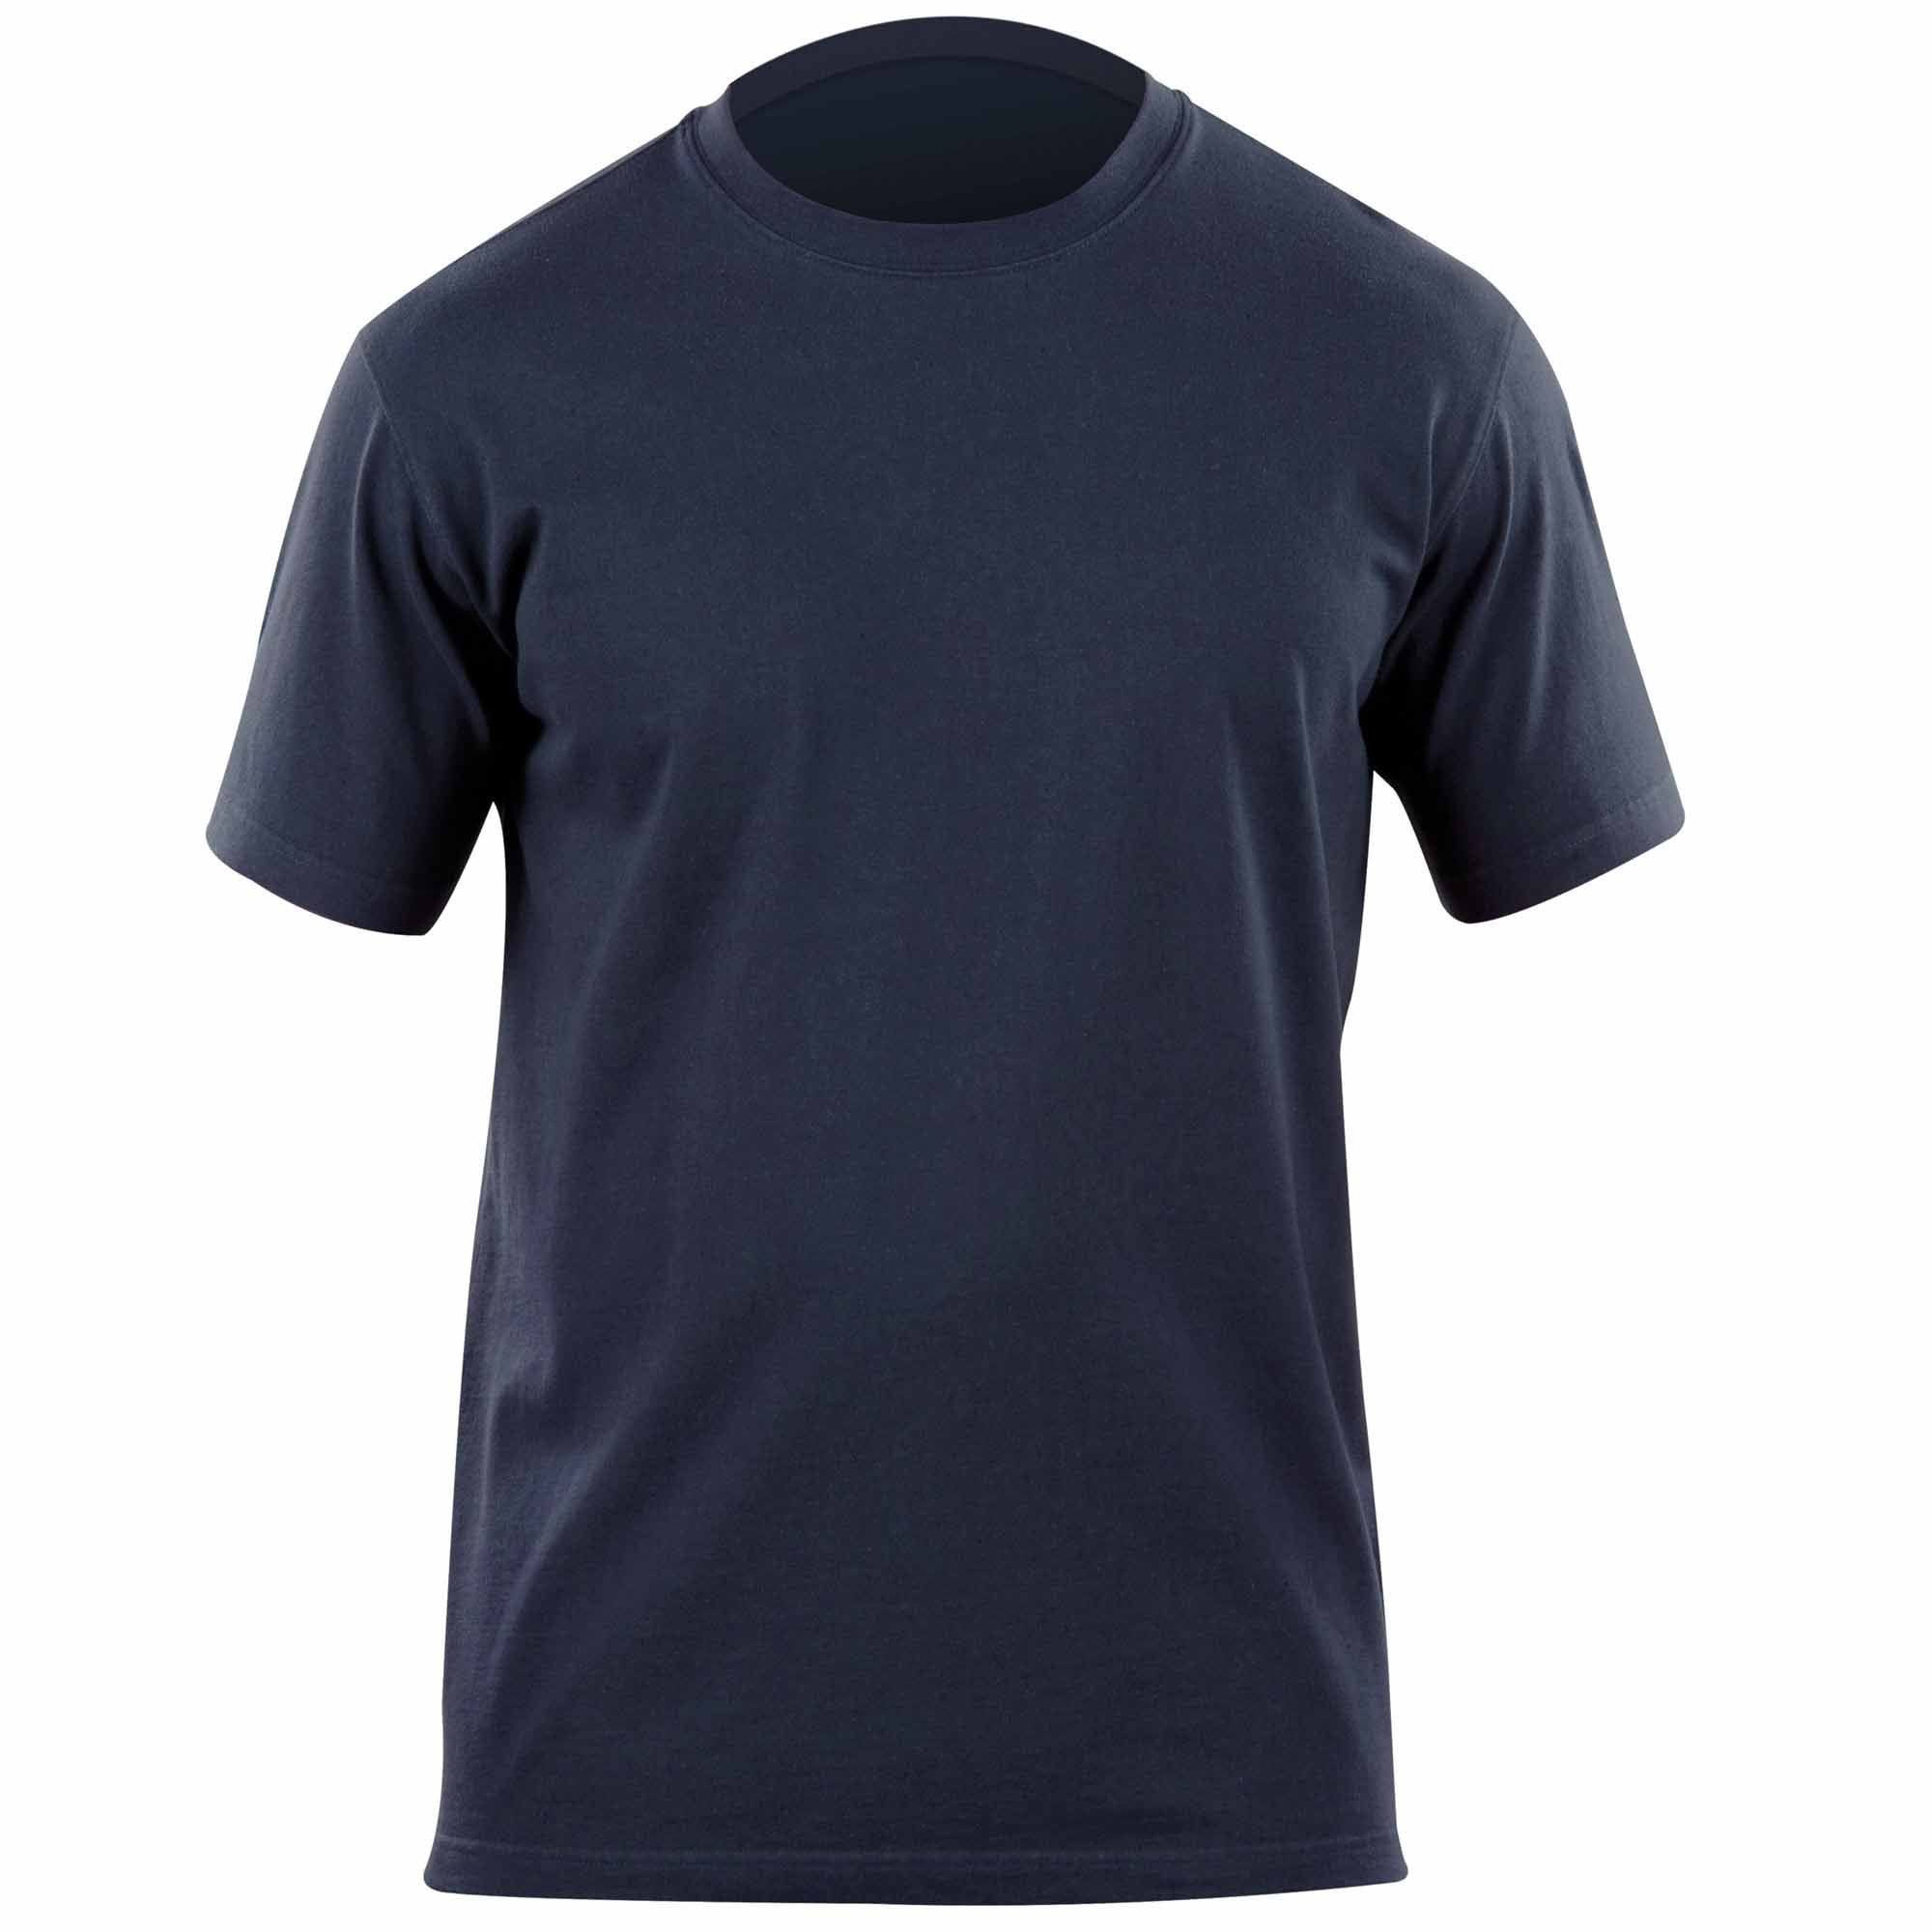 5.11 Tactical | Professional T-Shirt - LT